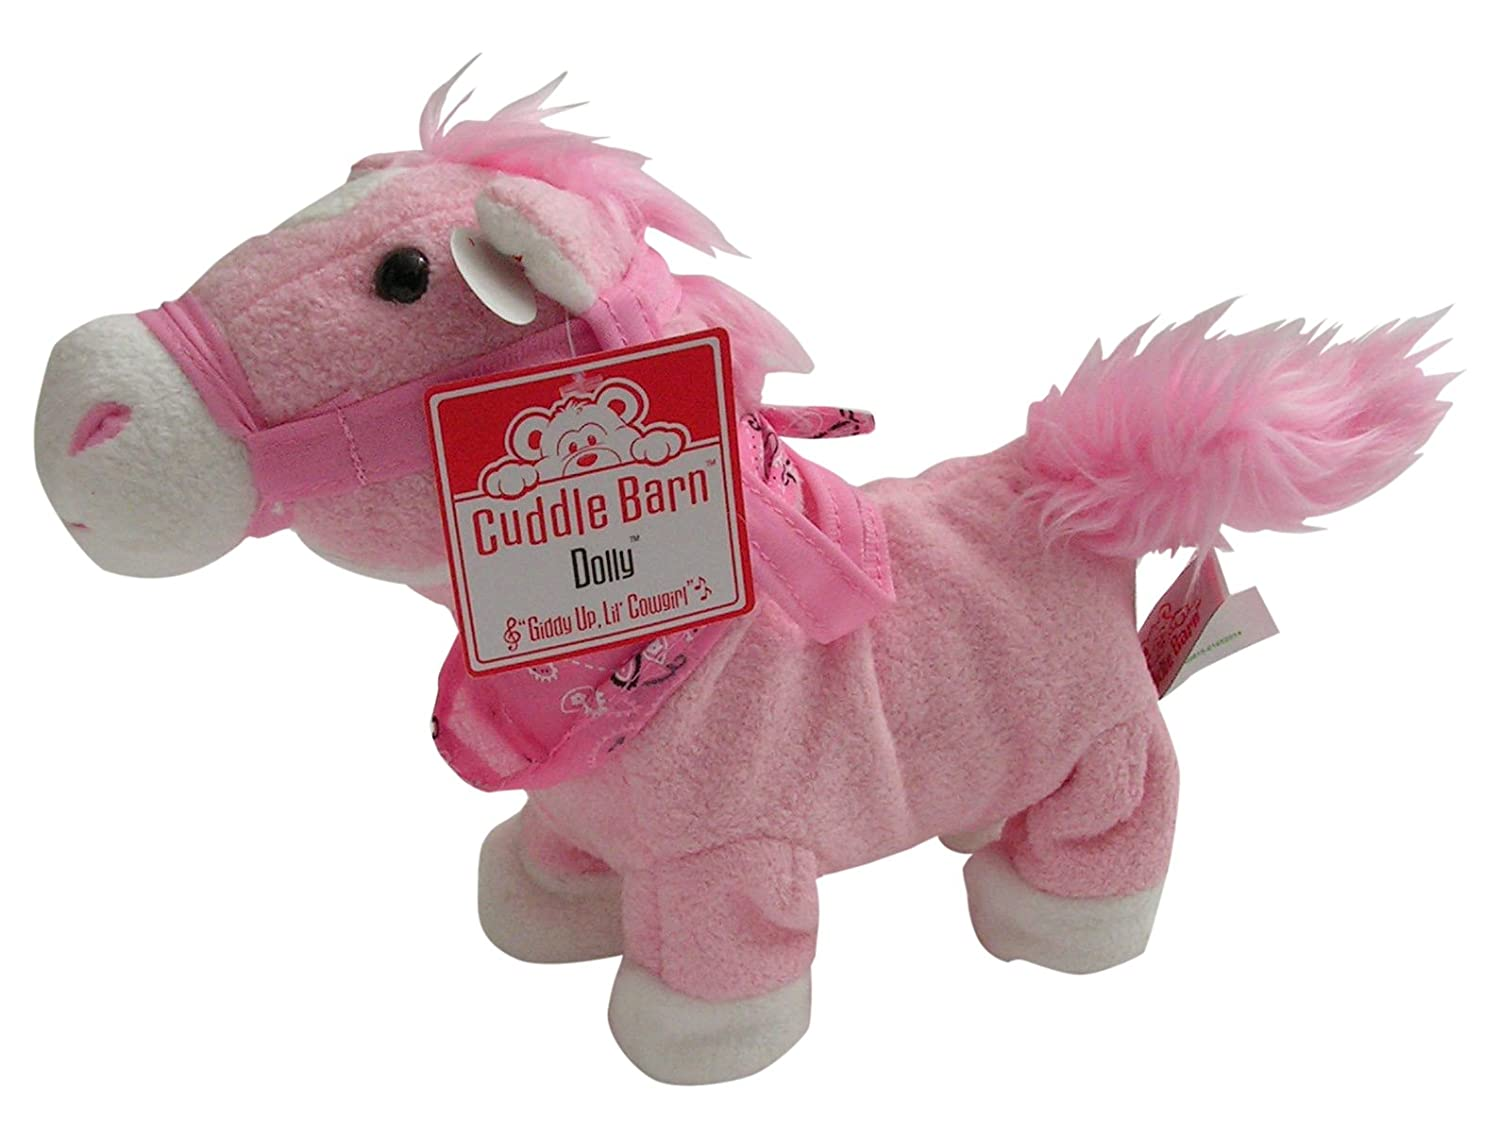 Cuddle Barn Dolly The Pink Pony Toy